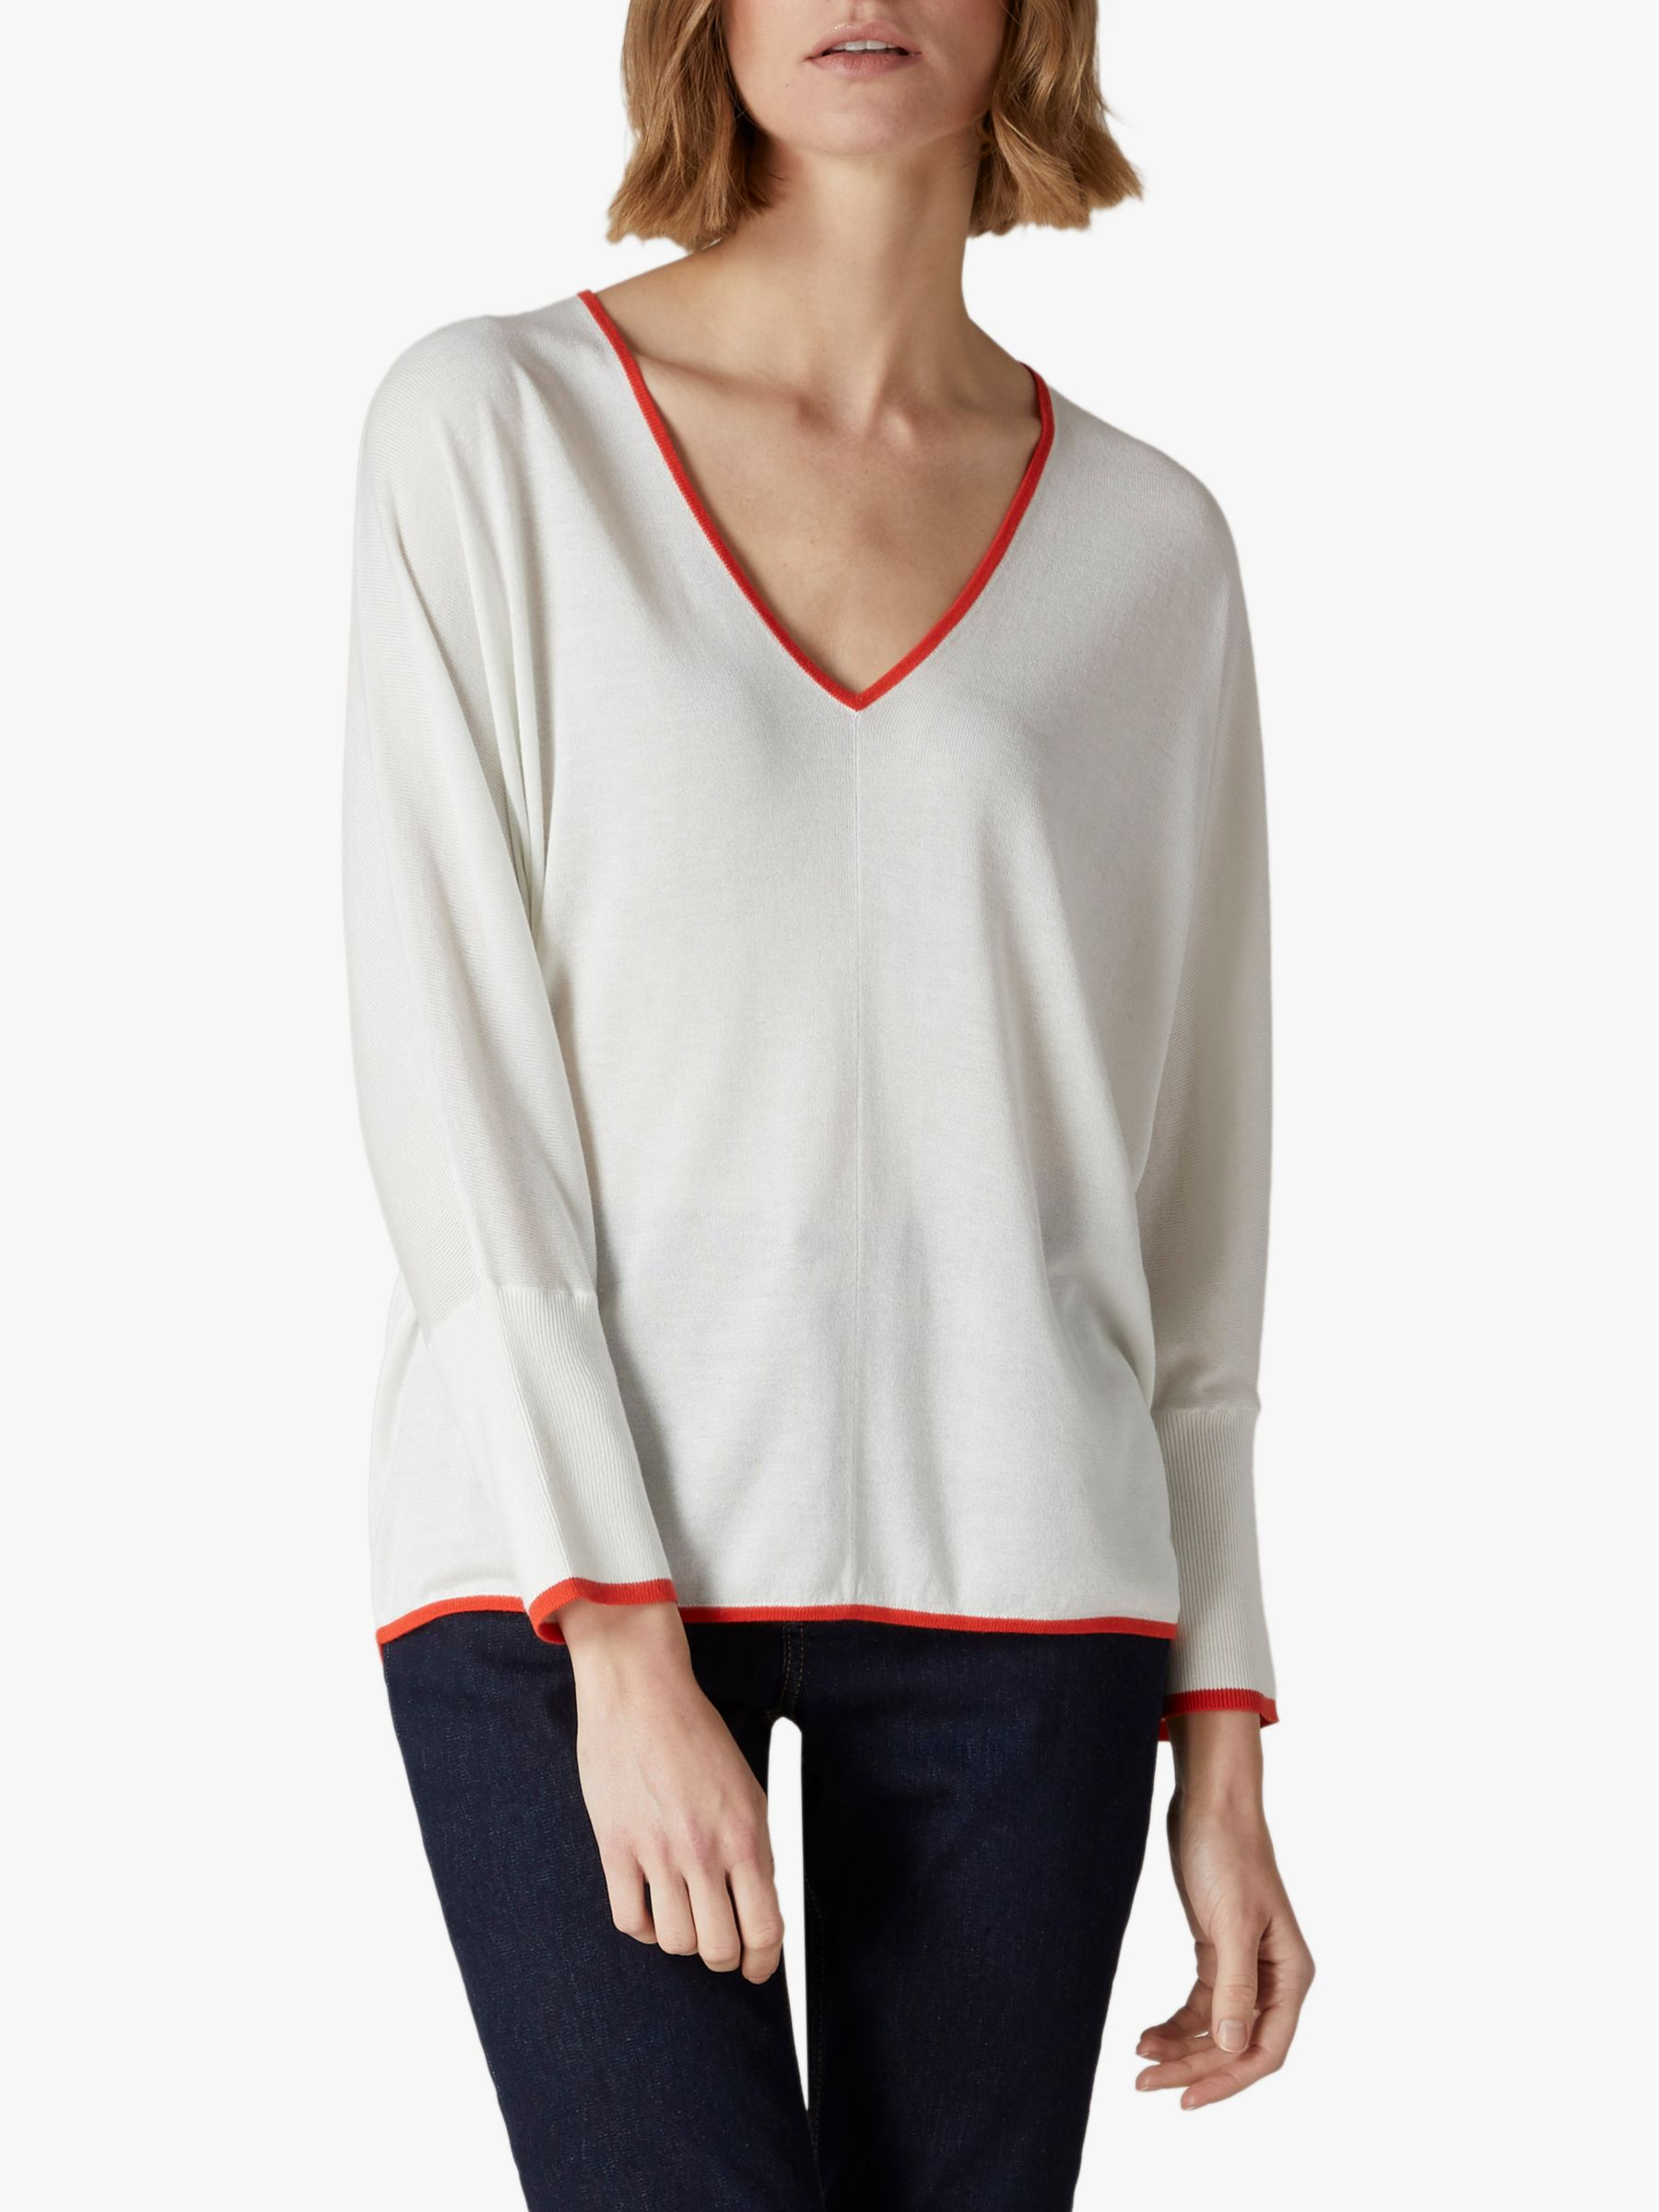 Jaeger Jaeger Silk Blend Contrast V-Neck Sweater, Ivory